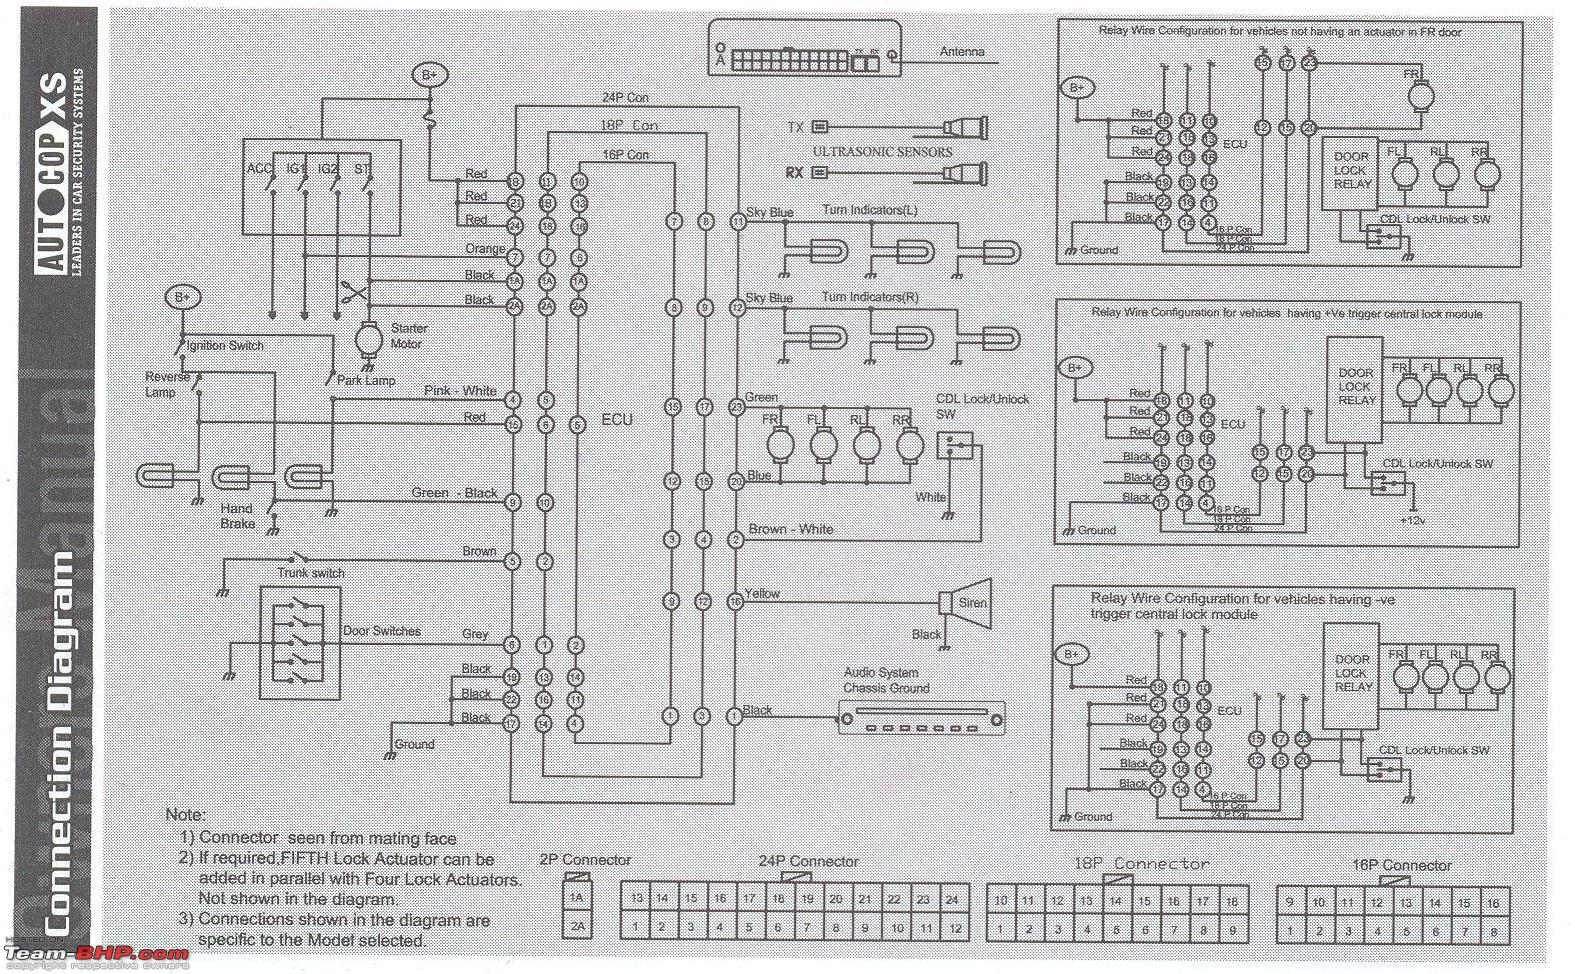 autocop XS manual/wiring diagram-image-5.jpg